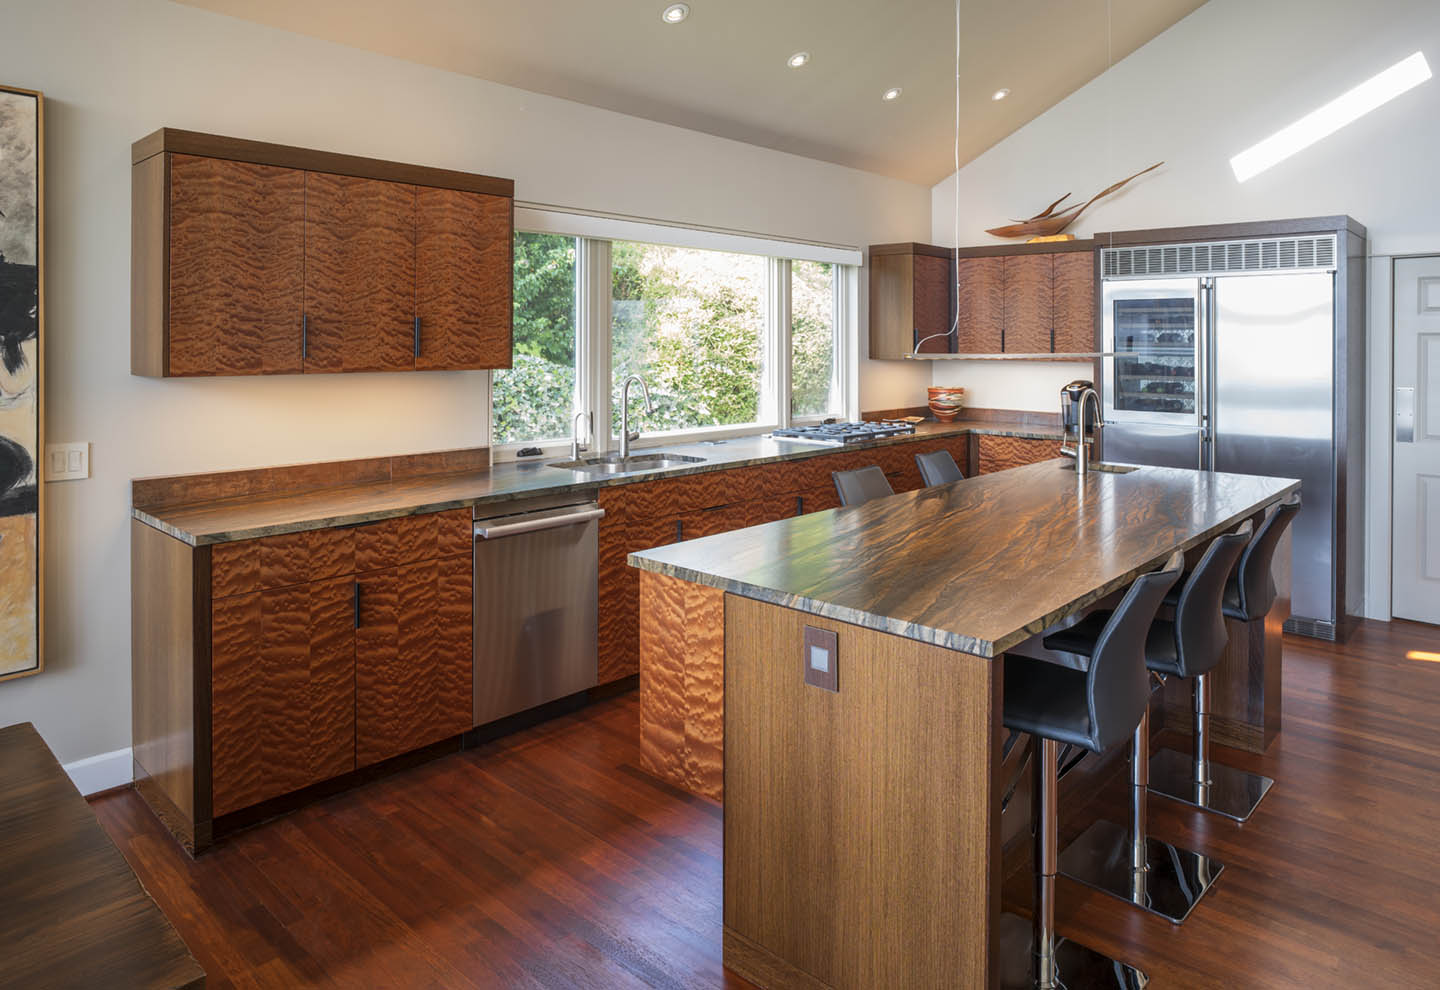 Bubbly and vibrant Quilted Makore and Wenge modern kitchen by Hugh Montgomery